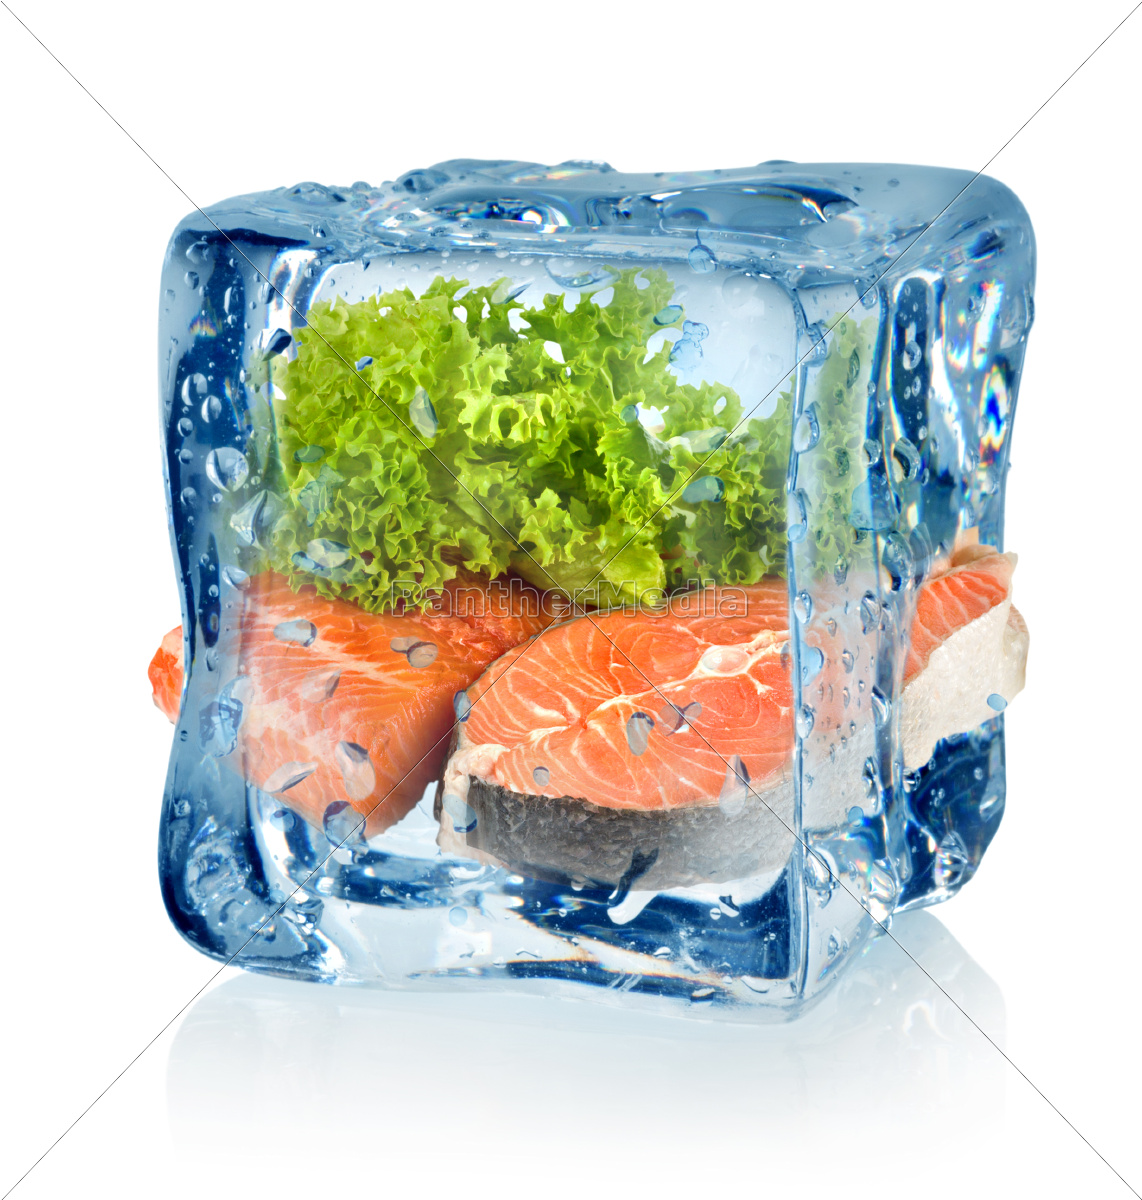 ice, cube, and, fish - 10125727